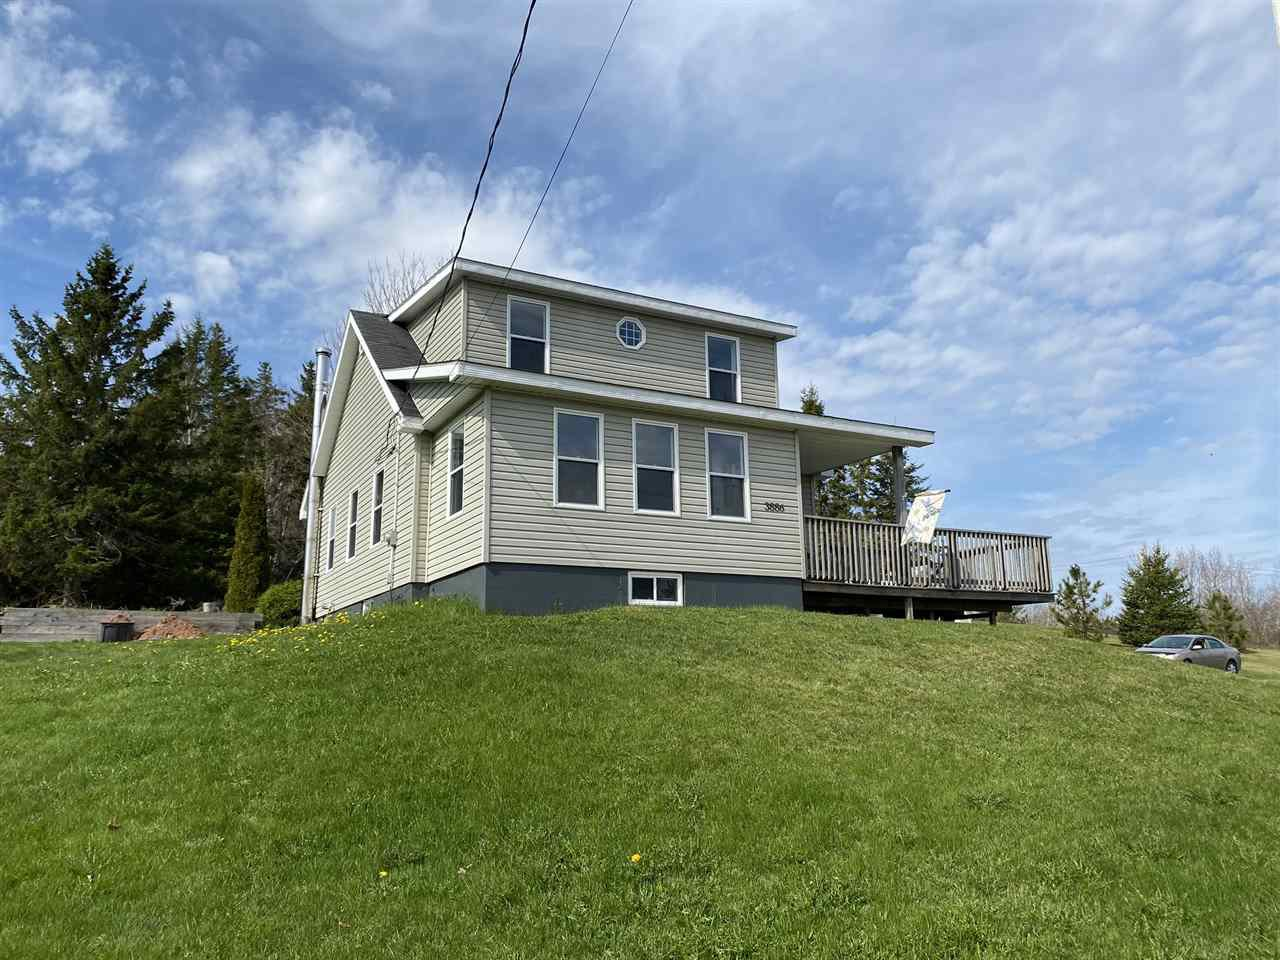 Main Photo: 3886 Scotsburn Road in Scotsburn: 108-Rural Pictou County Residential for sale (Northern Region)  : MLS®# 202008560